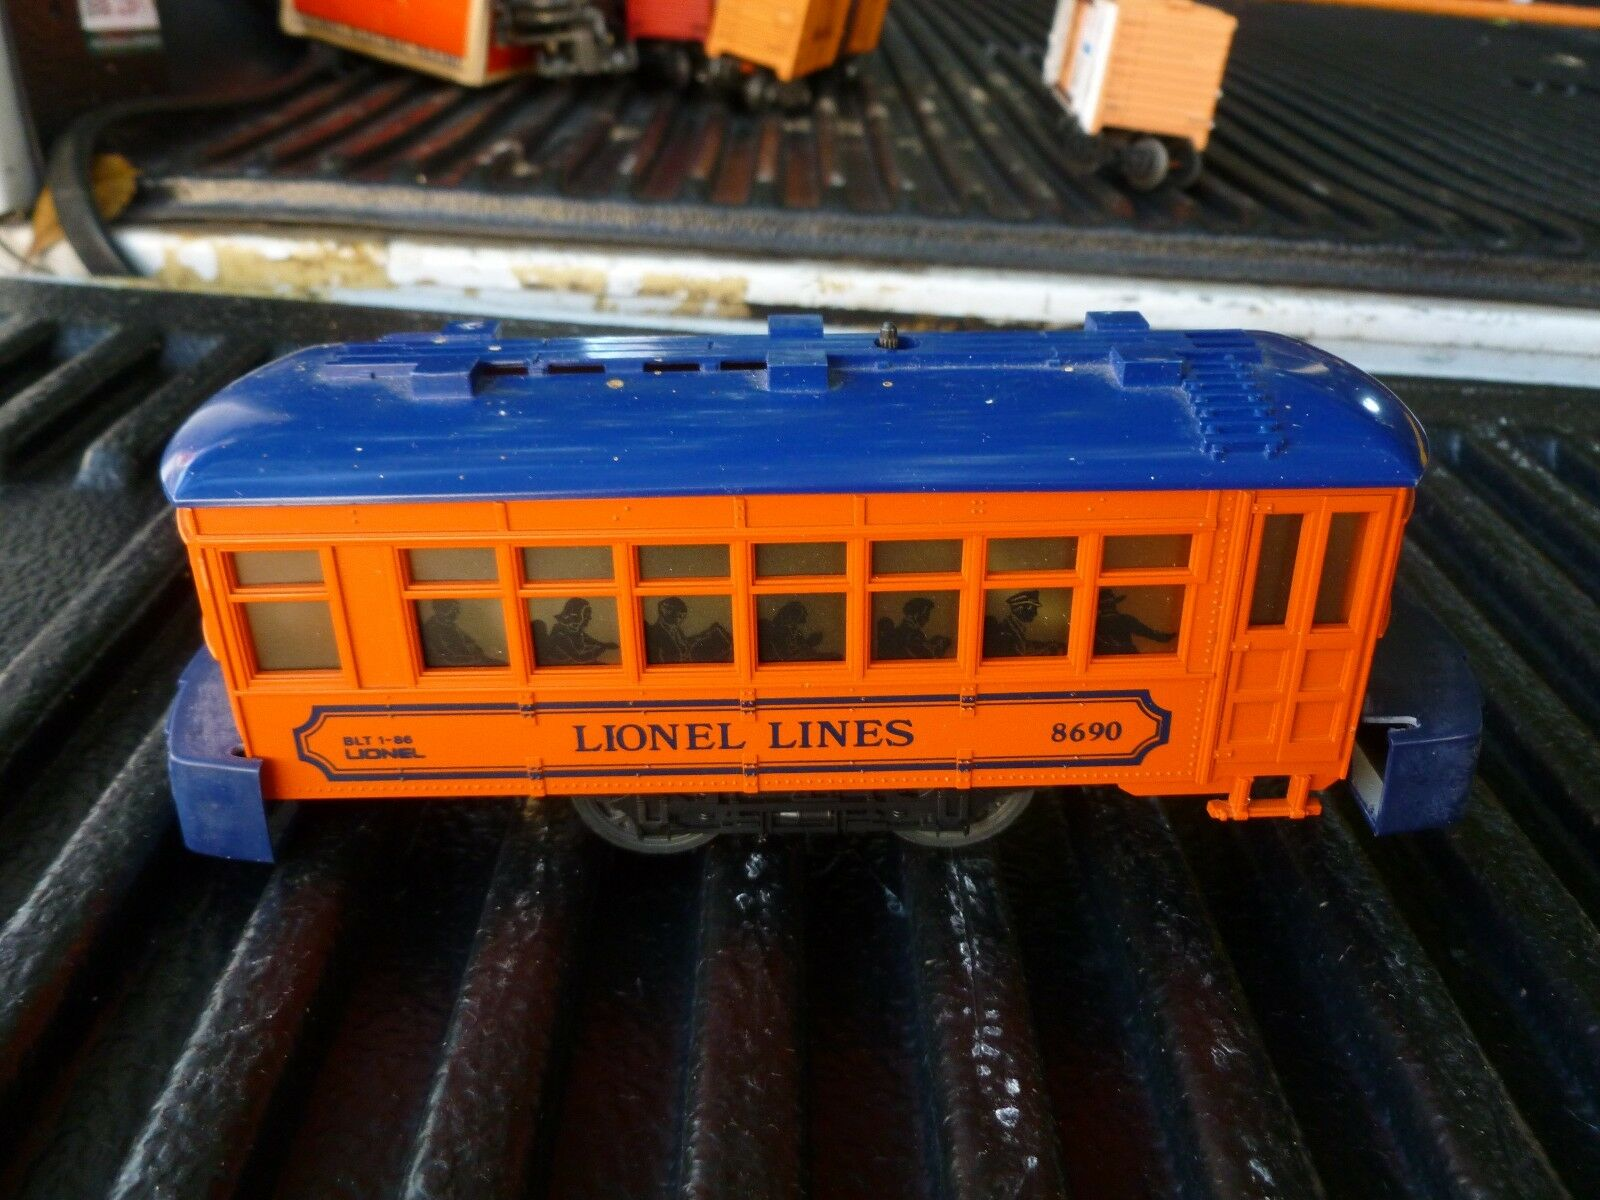 2 LIONEL MOTERIZED CARS LIONEL 8690 AND LIONEL 50